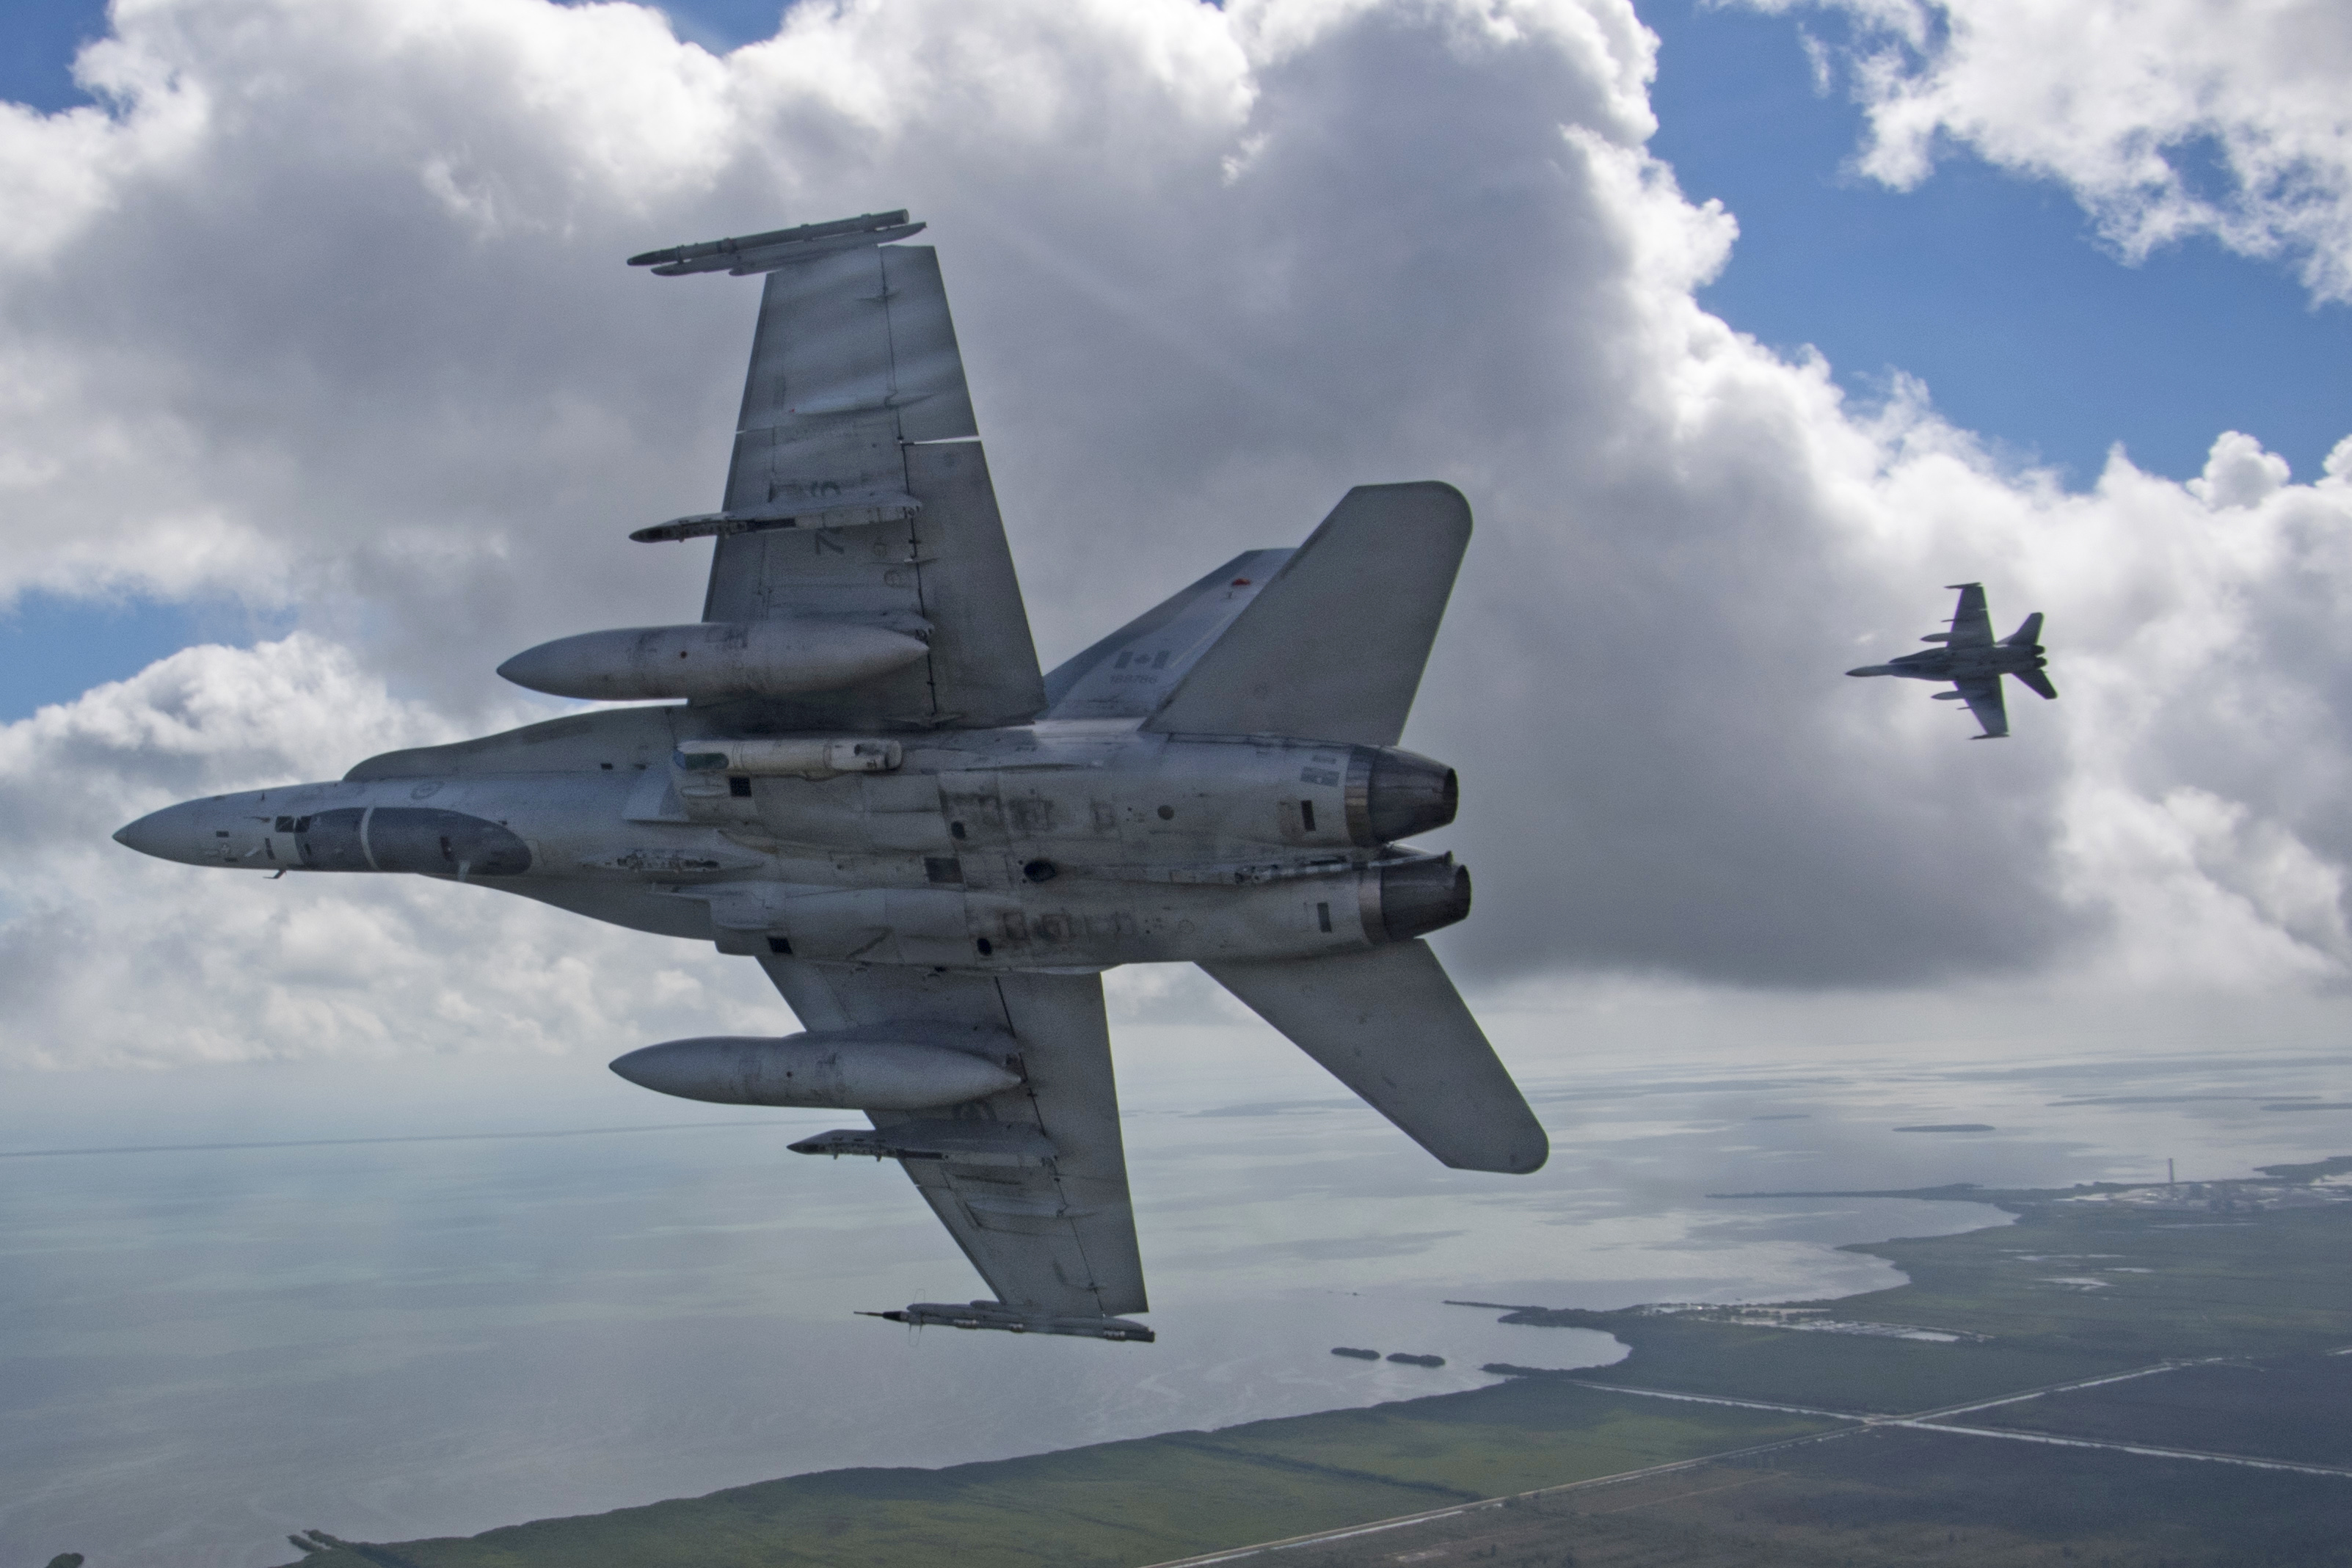 Two grey fighter aircraft in flight.